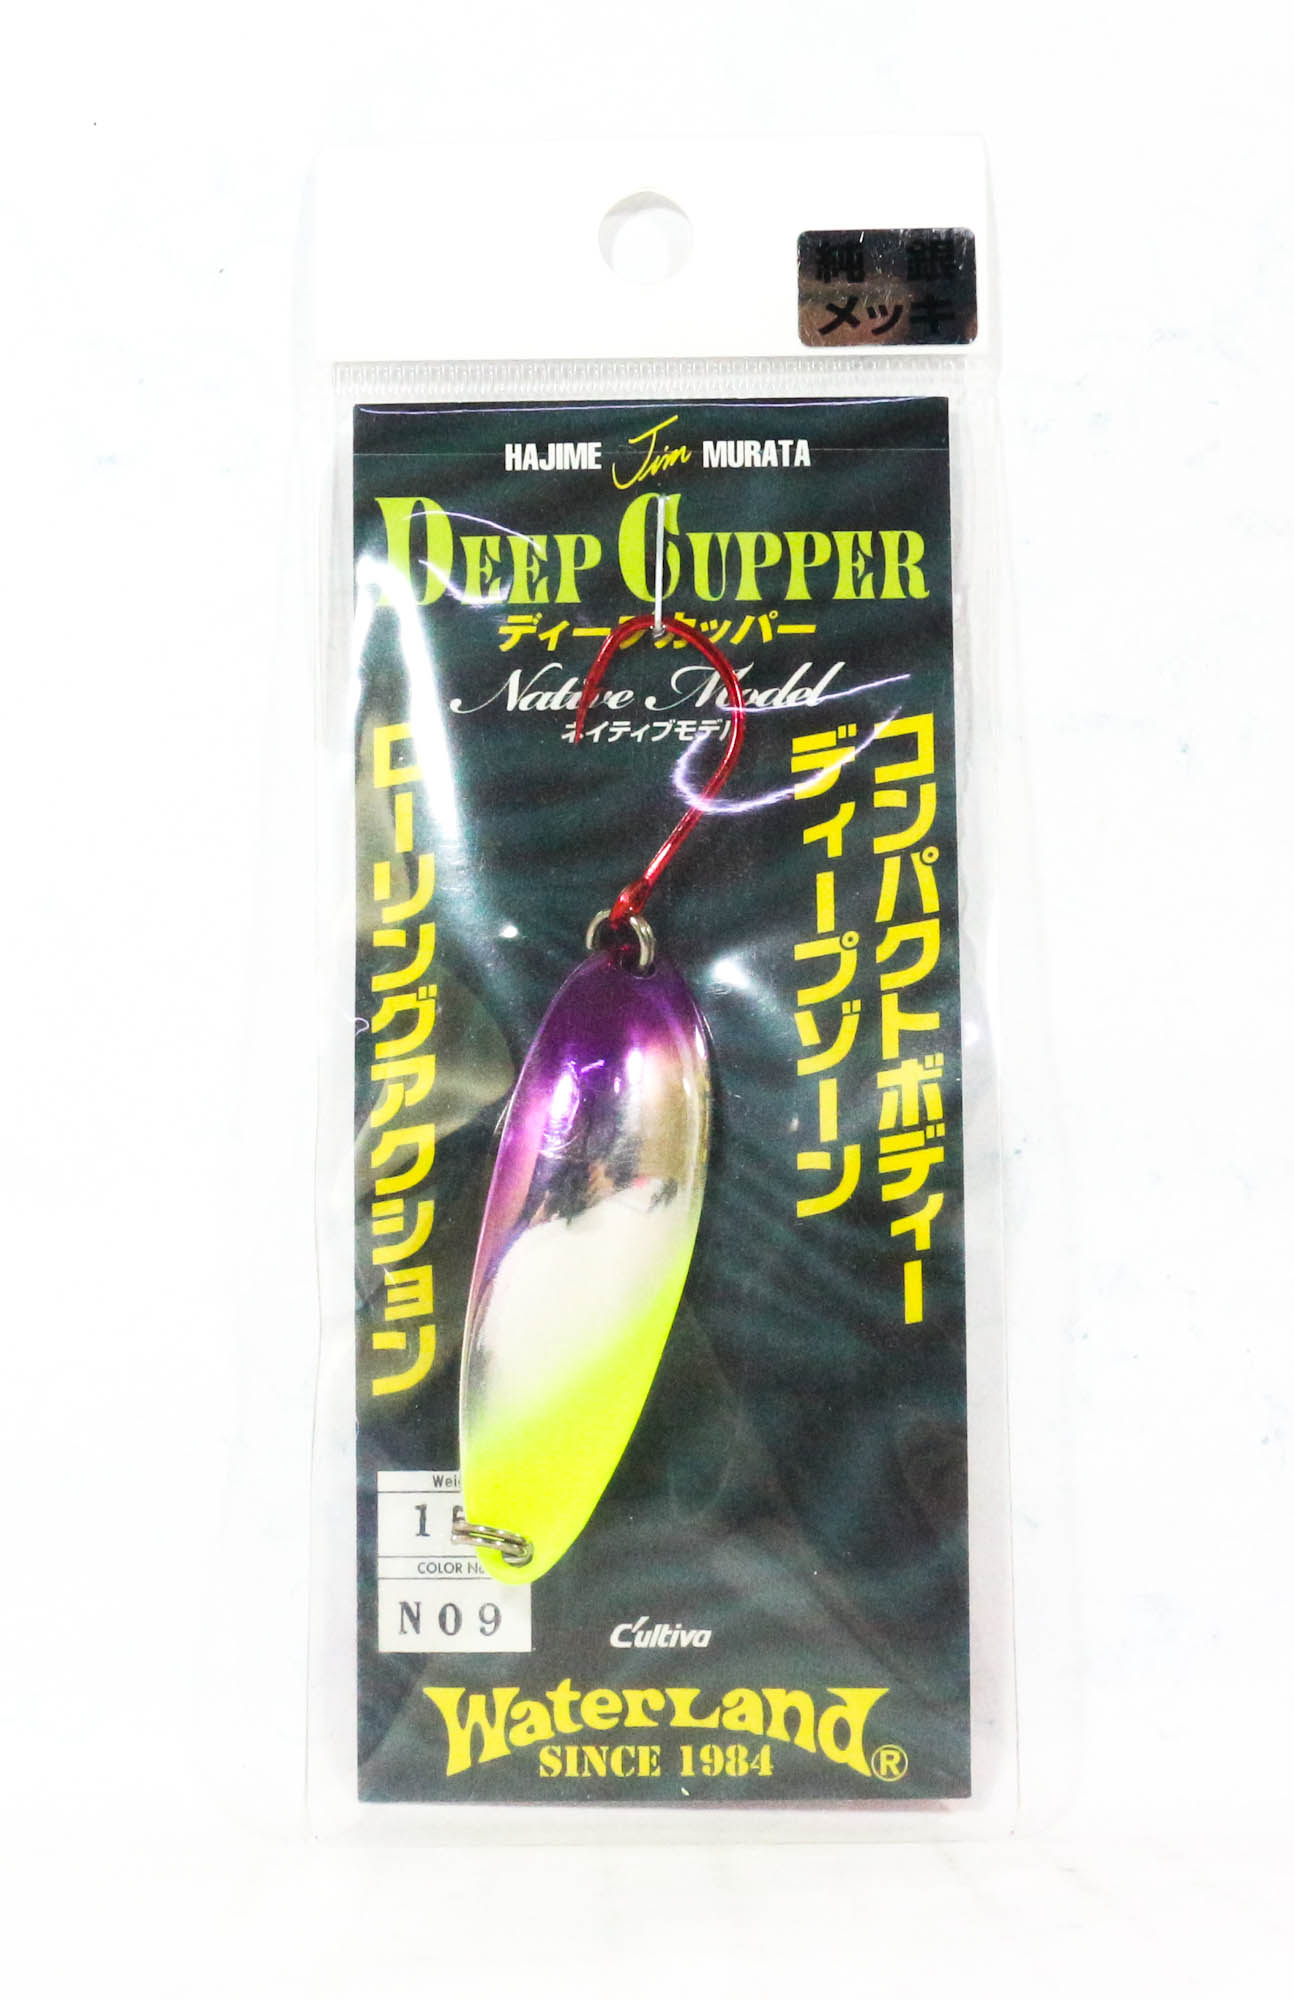 Water Land Spoon Deep Cupper Native 15 grams Sinking Lure 9 (7466)